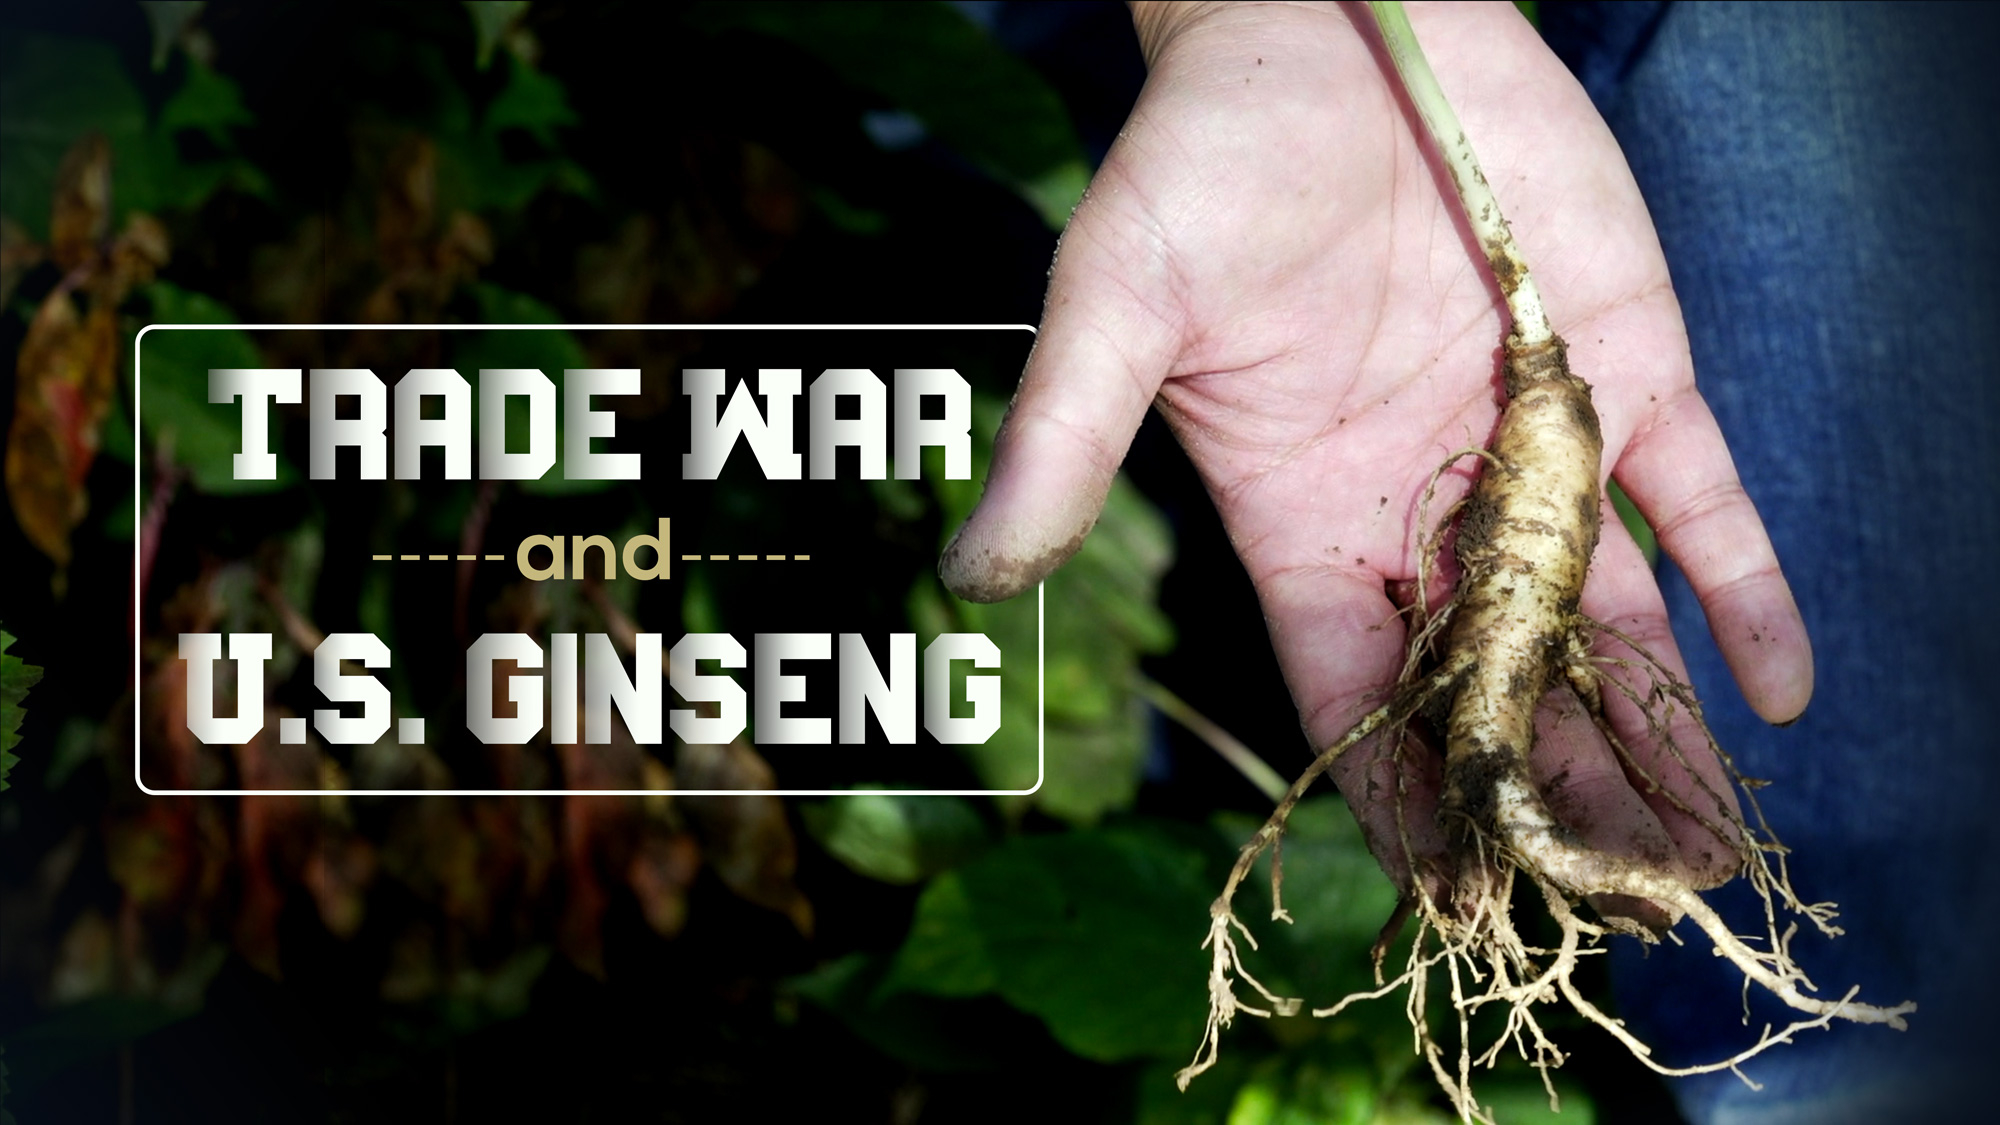 The uncertain fate of American ginseng | Hsu's Ginseng News